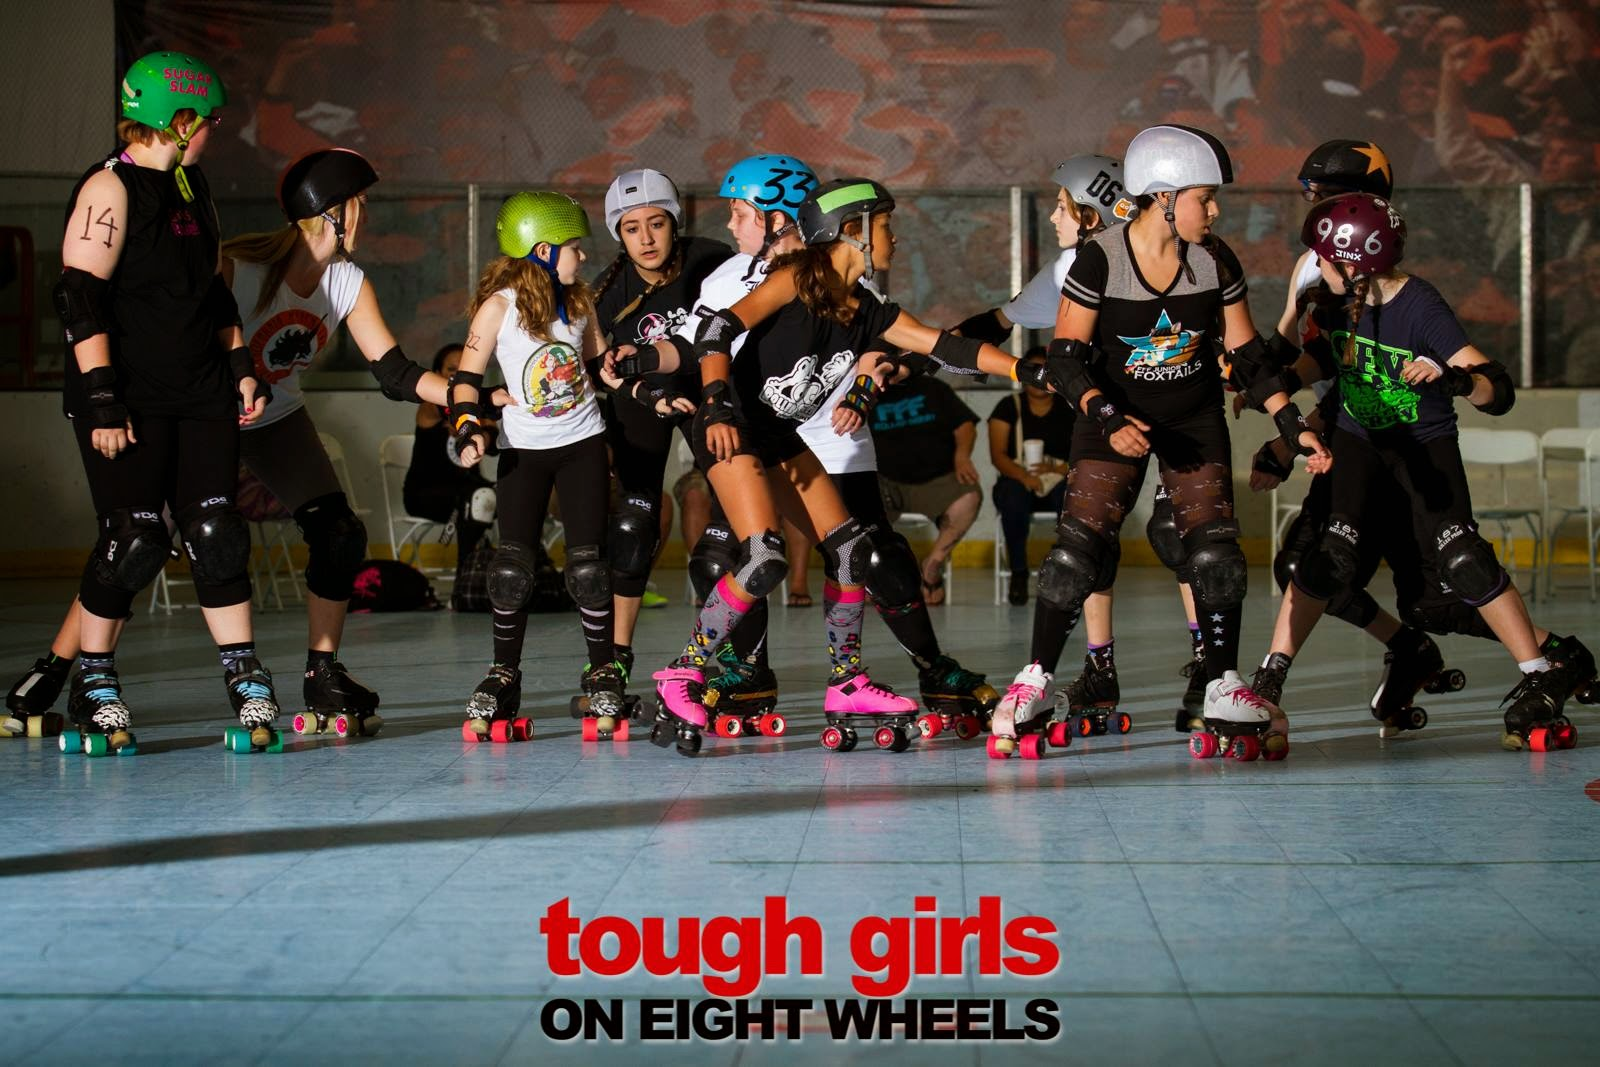 Roller skating visalia - I Love That My Daughter Sees These Young Ladies Getting Skate Time On The Track One Day I Hope To See Her In That Pack